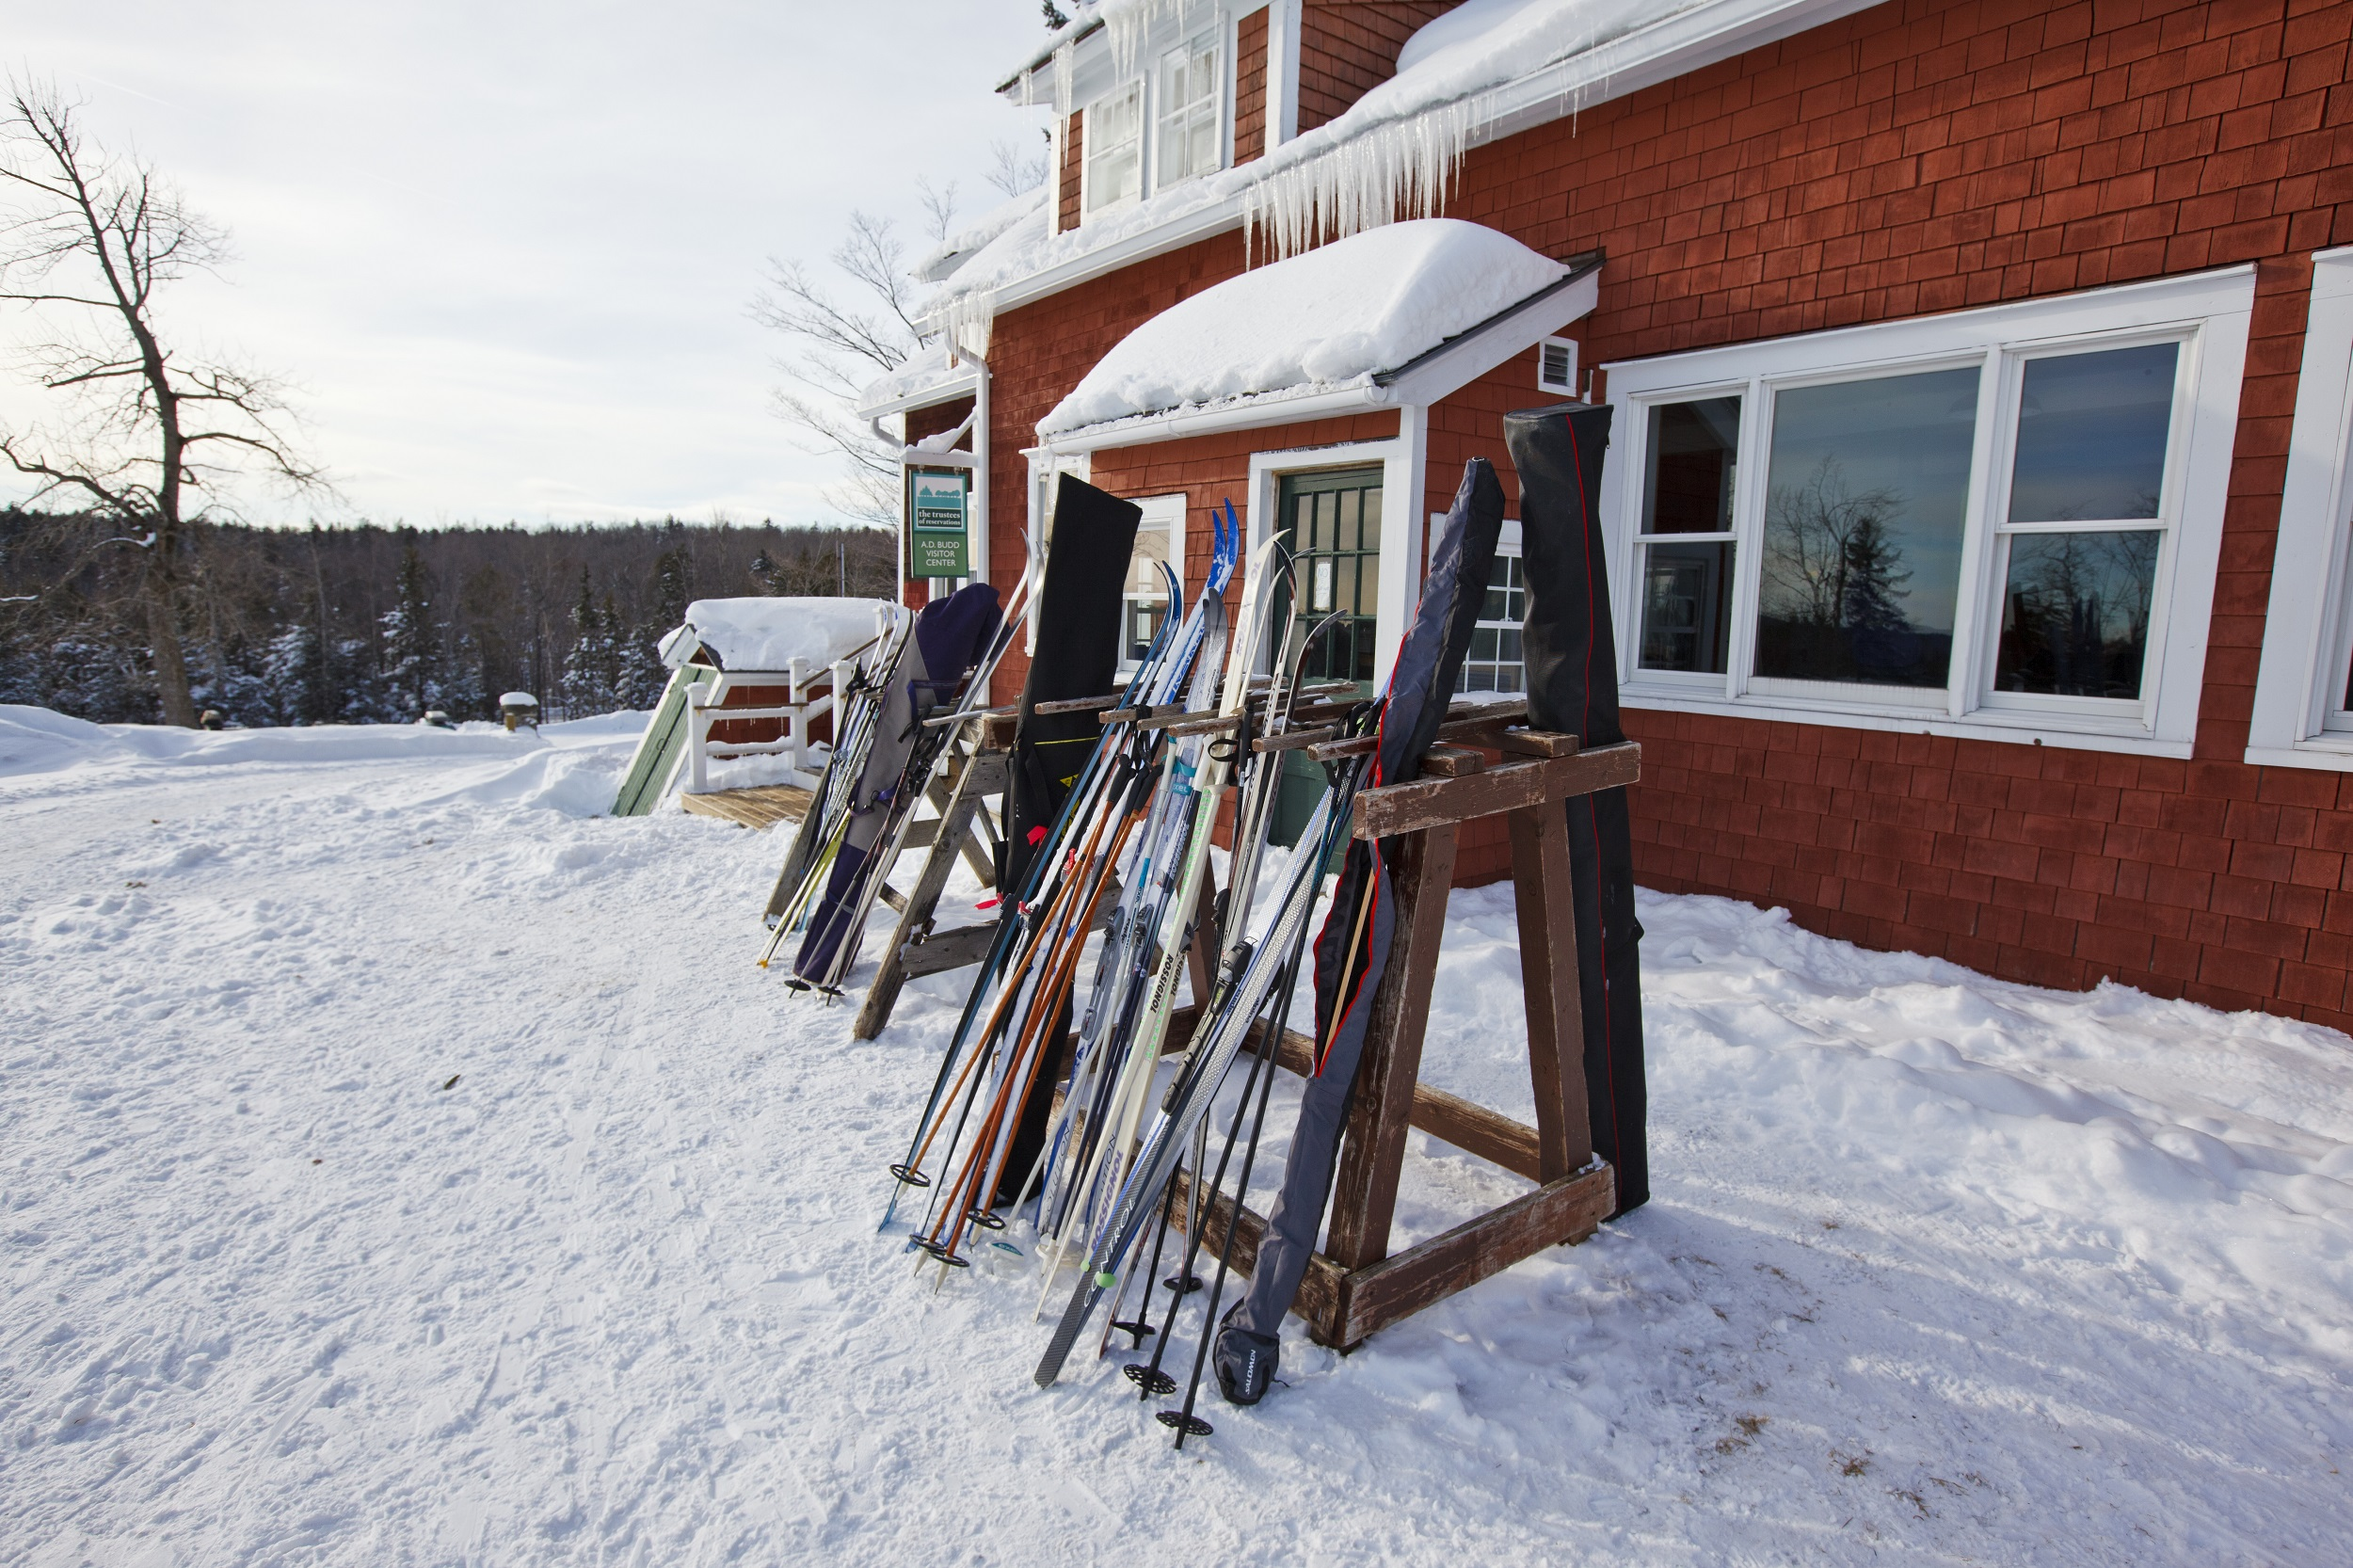 The cross-country skiing center at Notchview